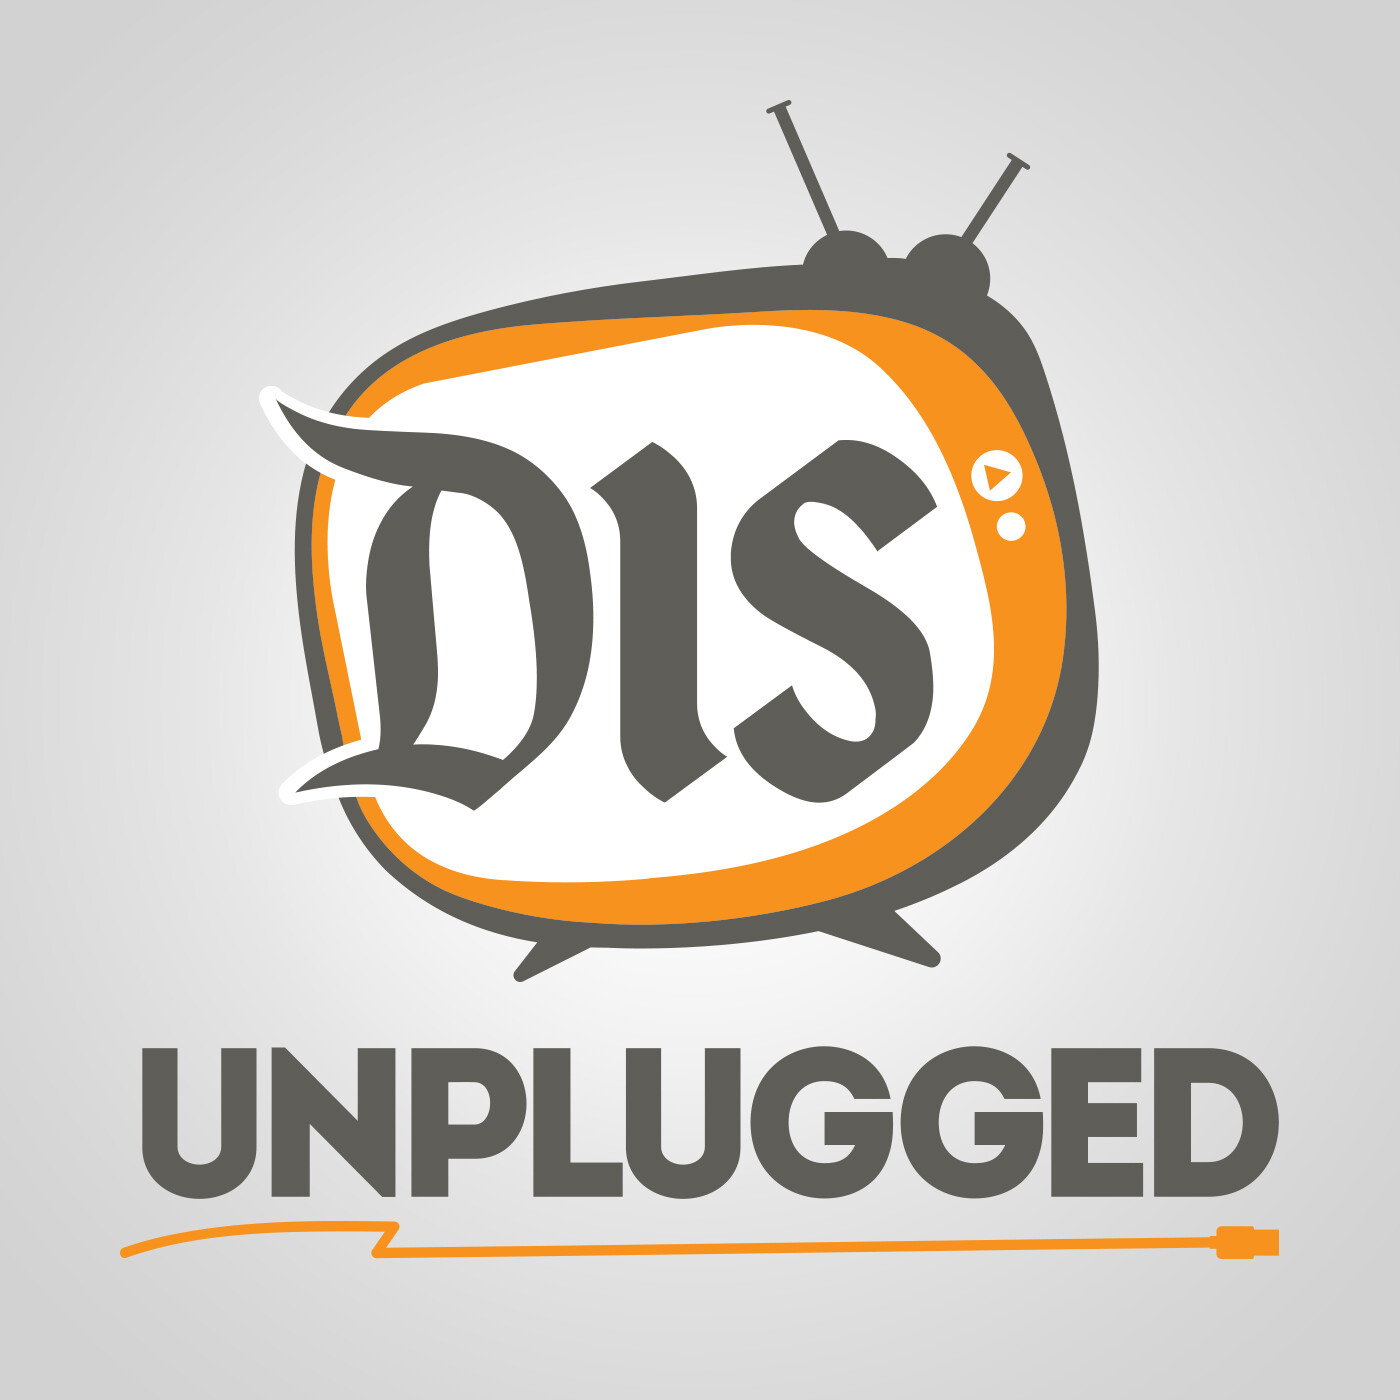 The DIS Unplugged: Disneyland Edition - A Roundtab